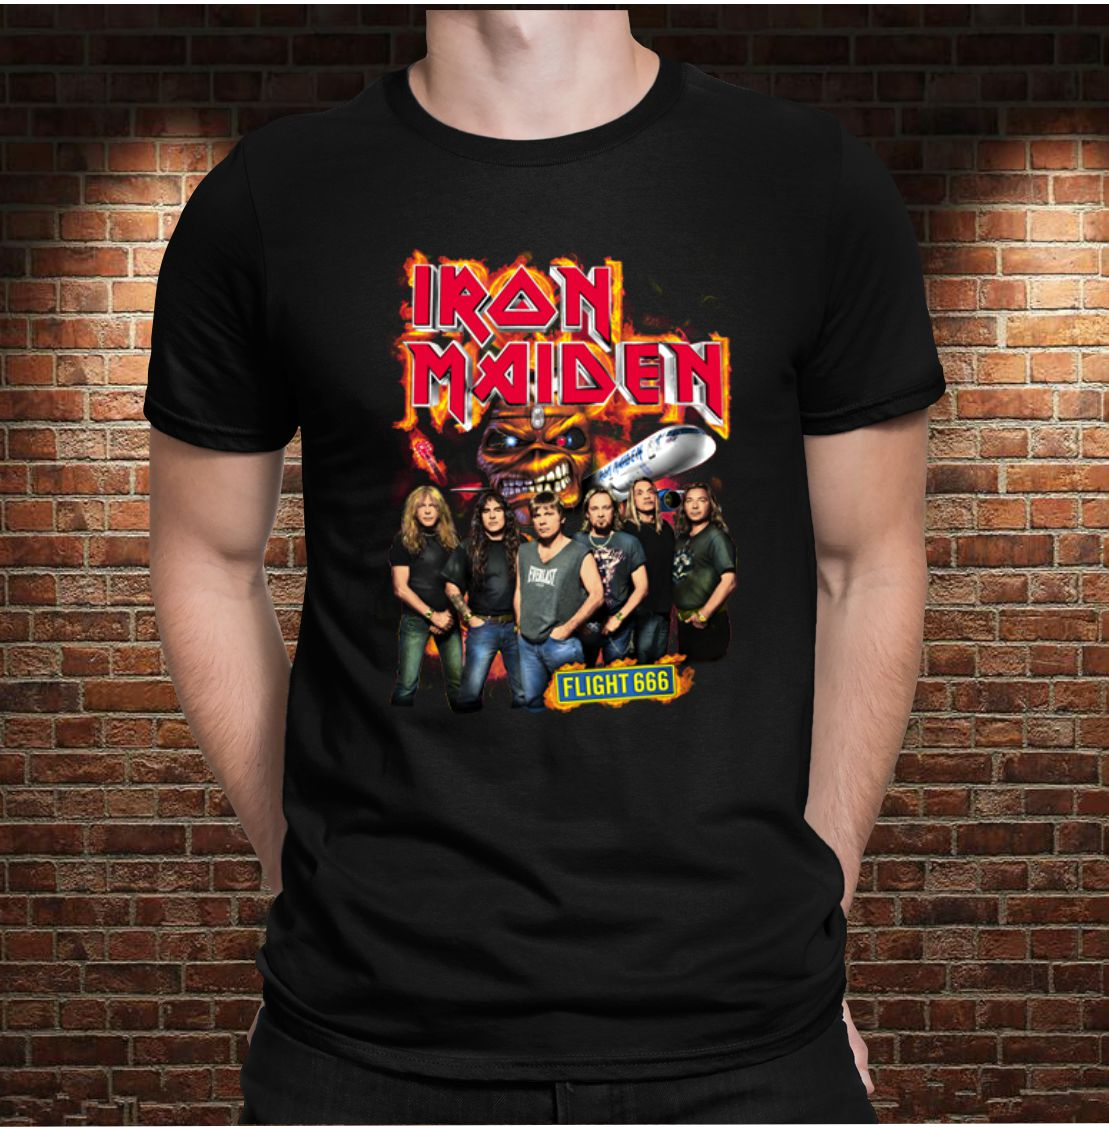 CAMISETA IRON MAIDEN